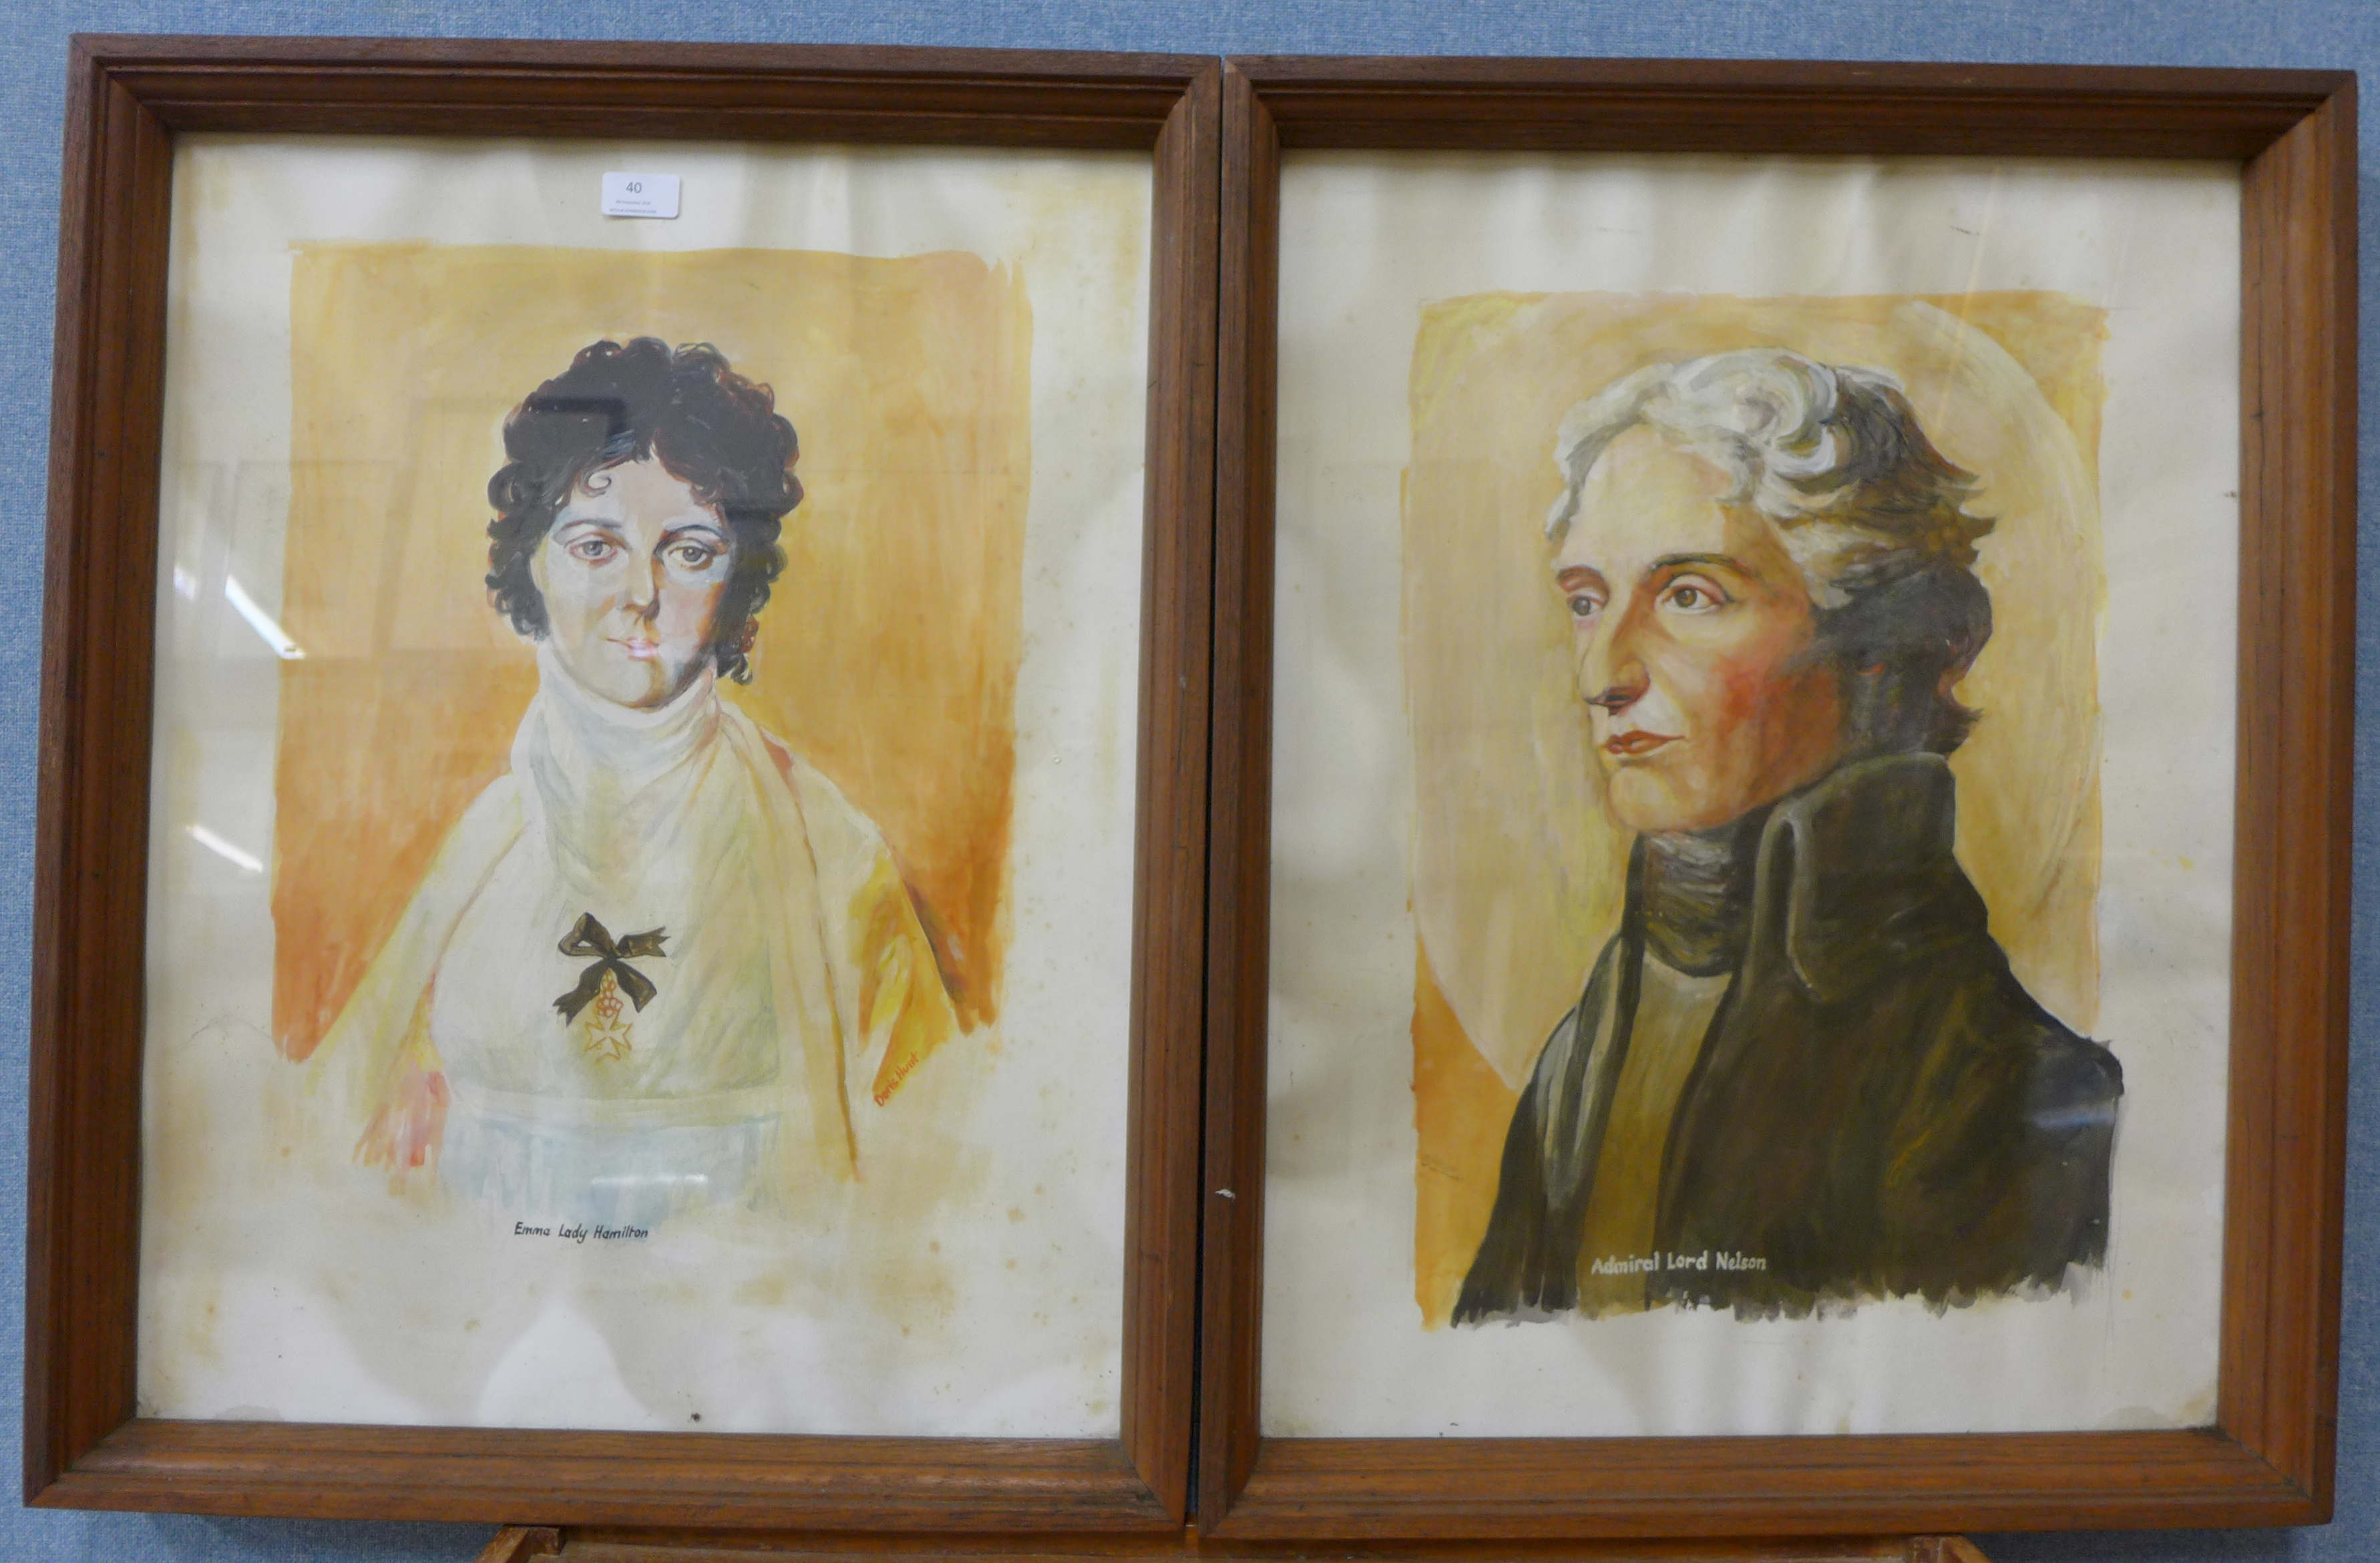 Lot 40 - A pair of portraits, Admiral Lord Nelson and Emma Lady Hamilton, watercolour,